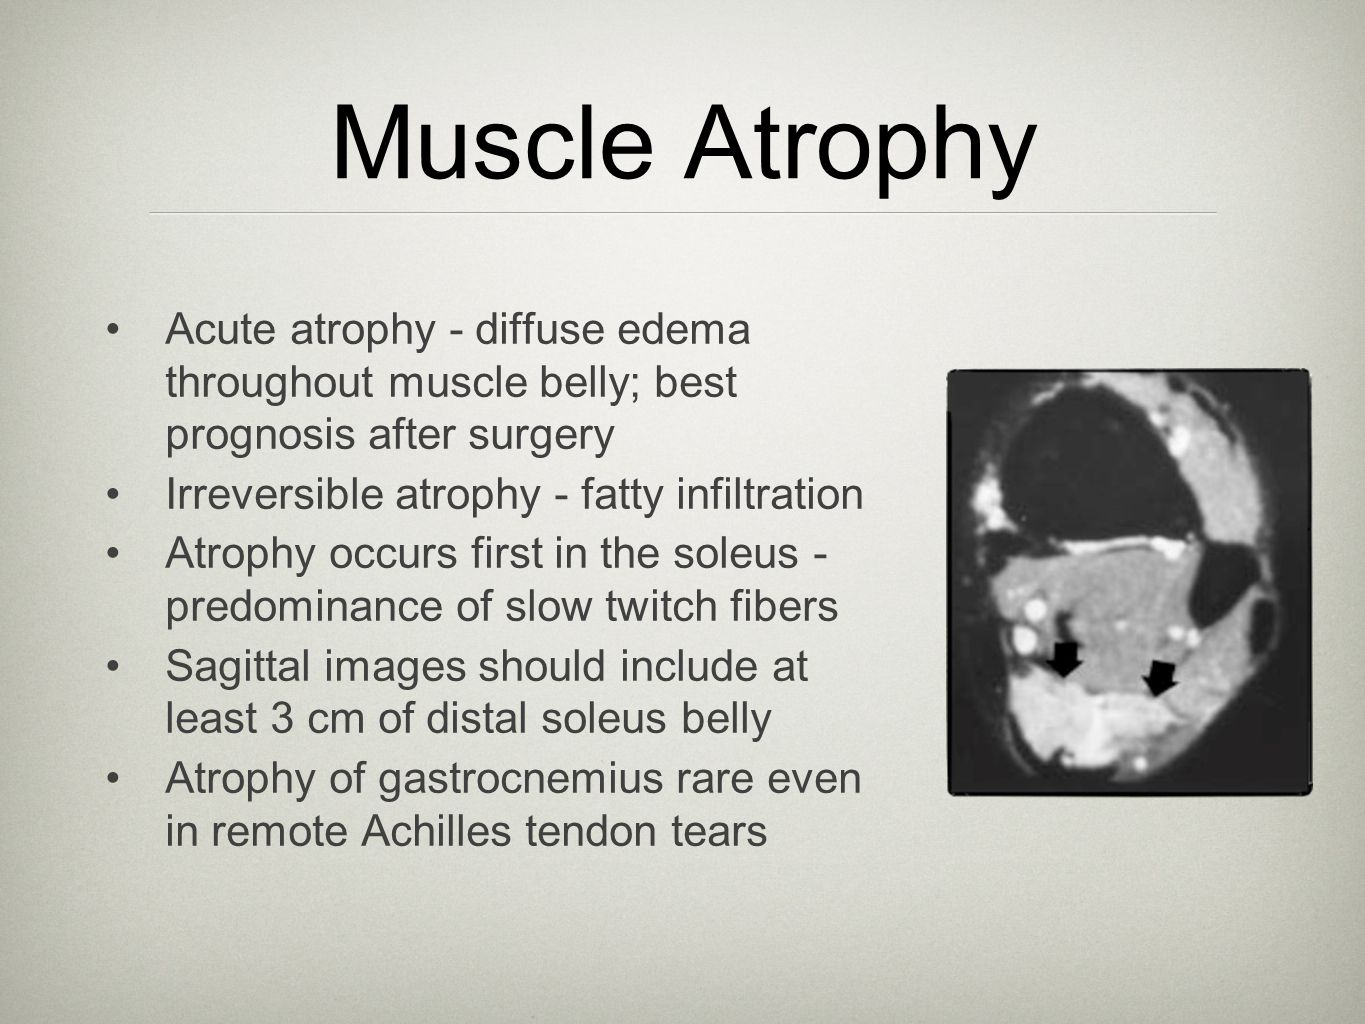 Muscle Atrophy Acute atrophy - diffuse edema throughout muscle belly; best prognosis after surgery.